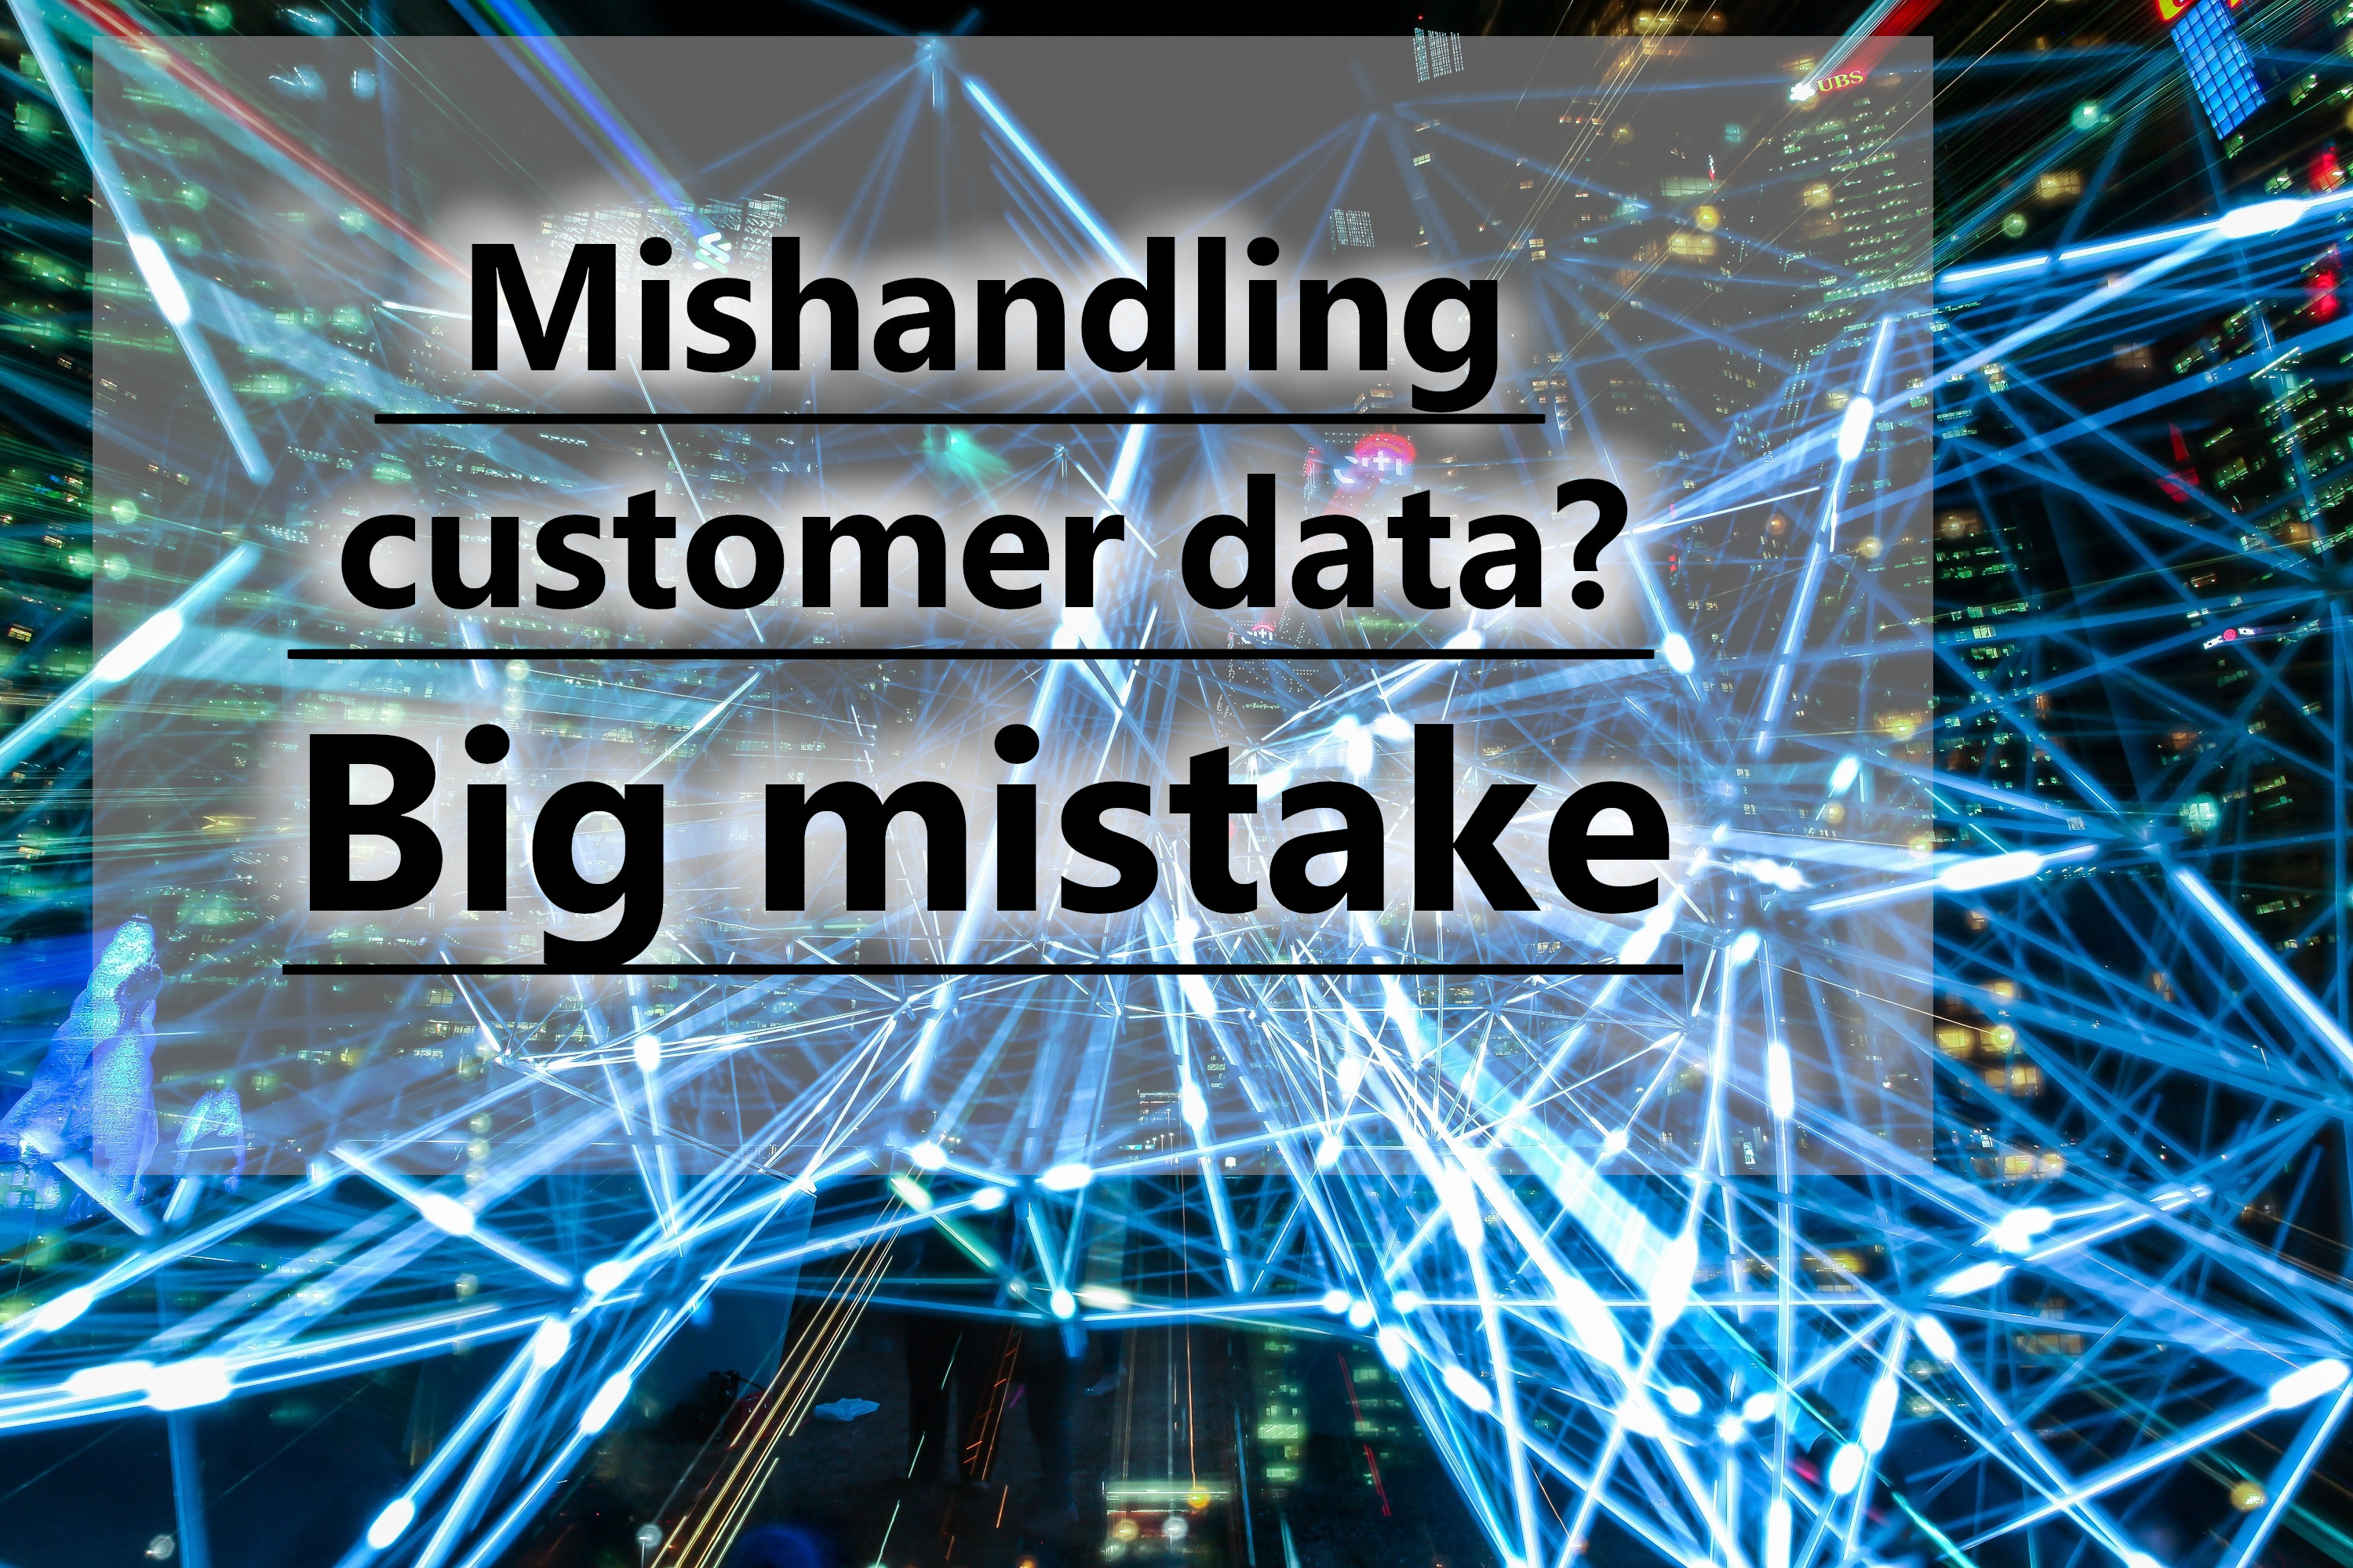 Mishandling customer data